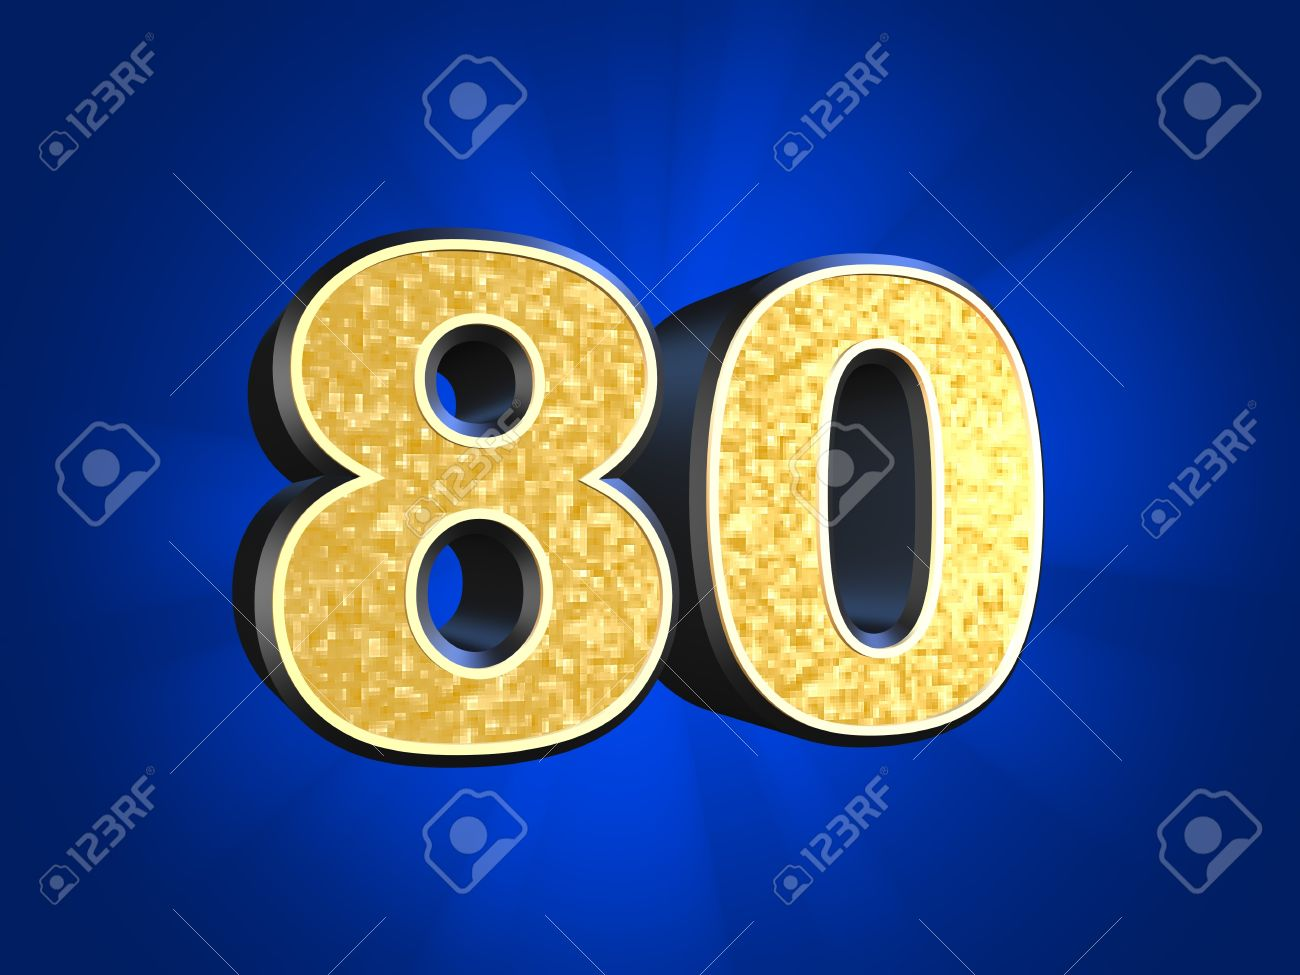 Number 80 clipart.